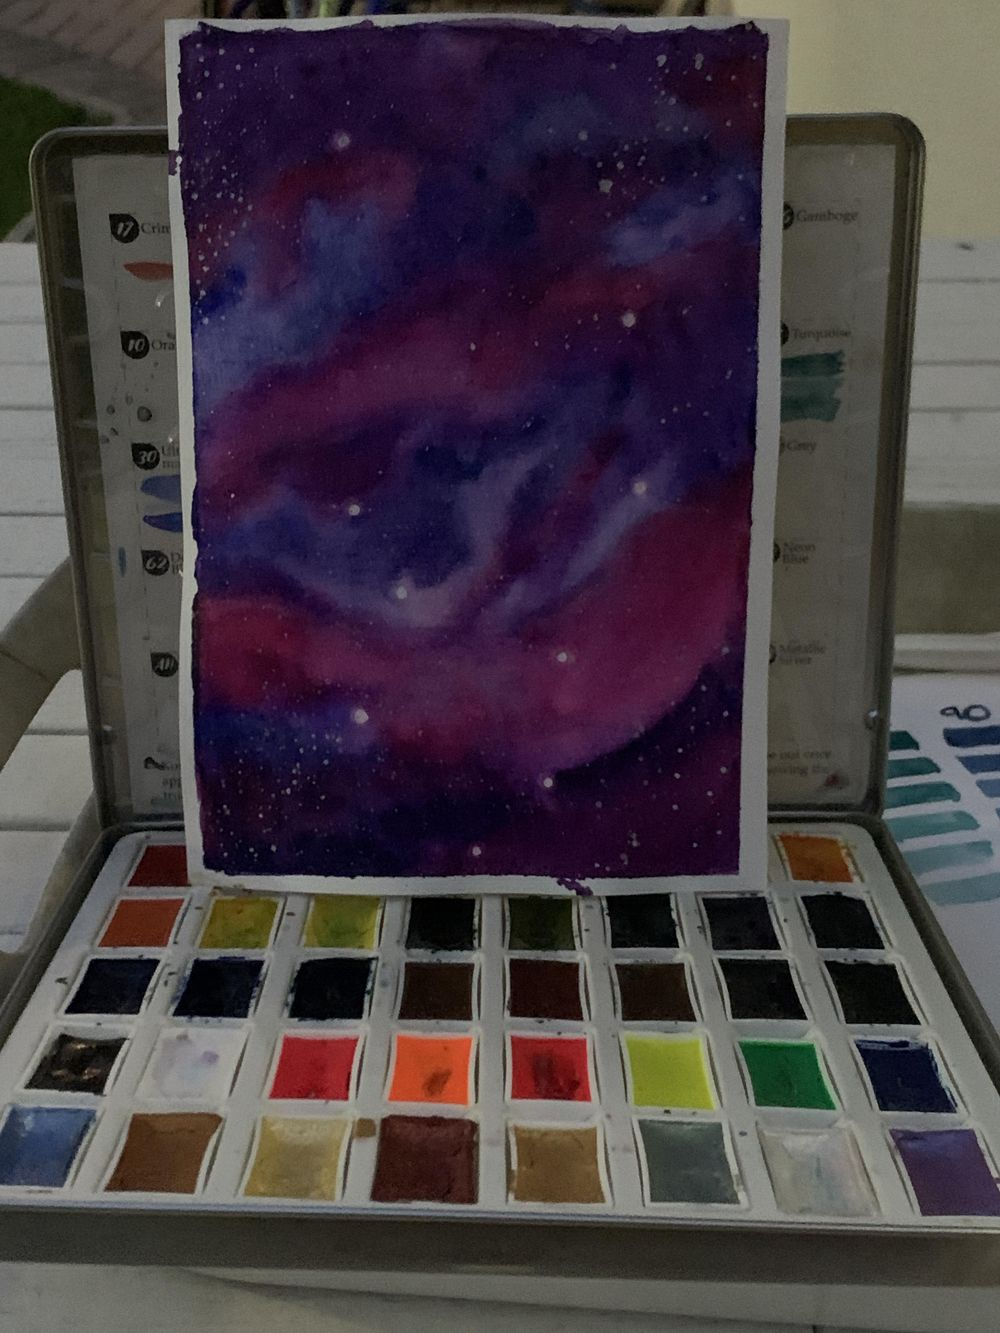 Galaxy 1 - image 1 - student project